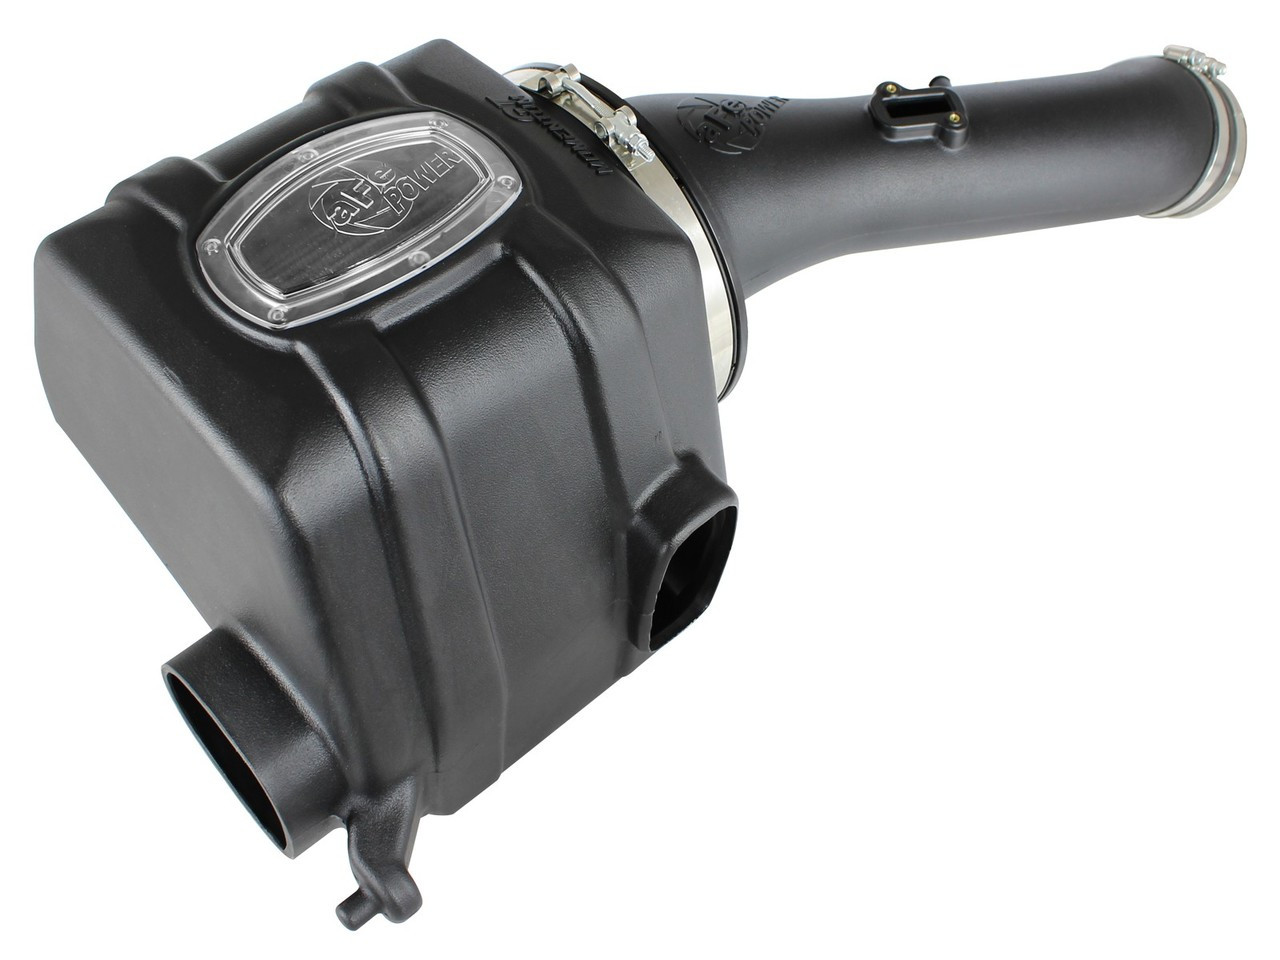 aFe POWER 51-76003 Momentum GT Pro DRY S Cold Air Intake System for 07-17 Toyota Tundra V8-5.7L